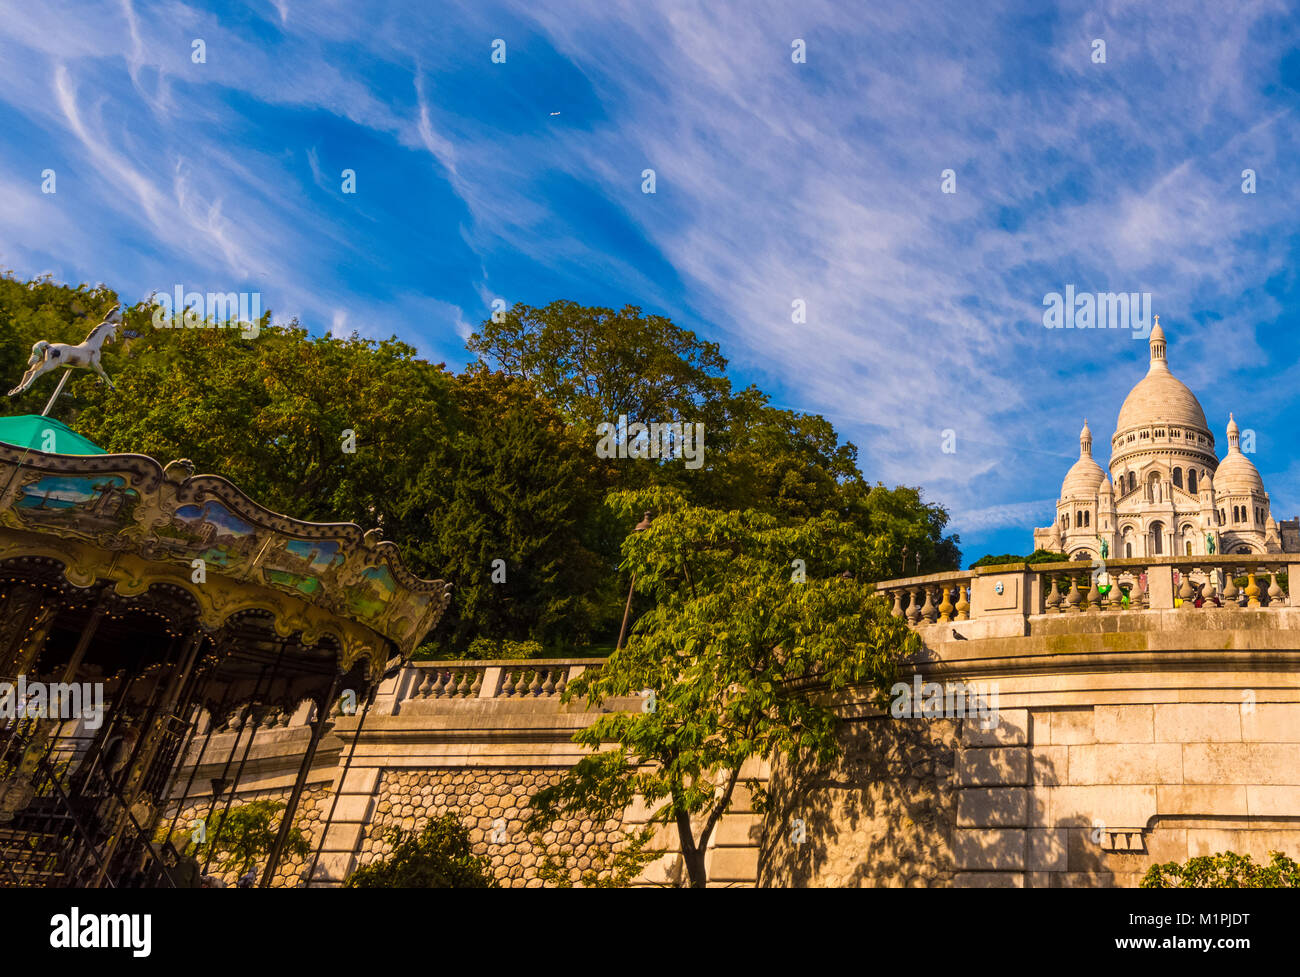 Color outdoor architectural image of the basilica Sacre Coeur, Paris, France, taken on a sunny day with blue sky - Stock Image